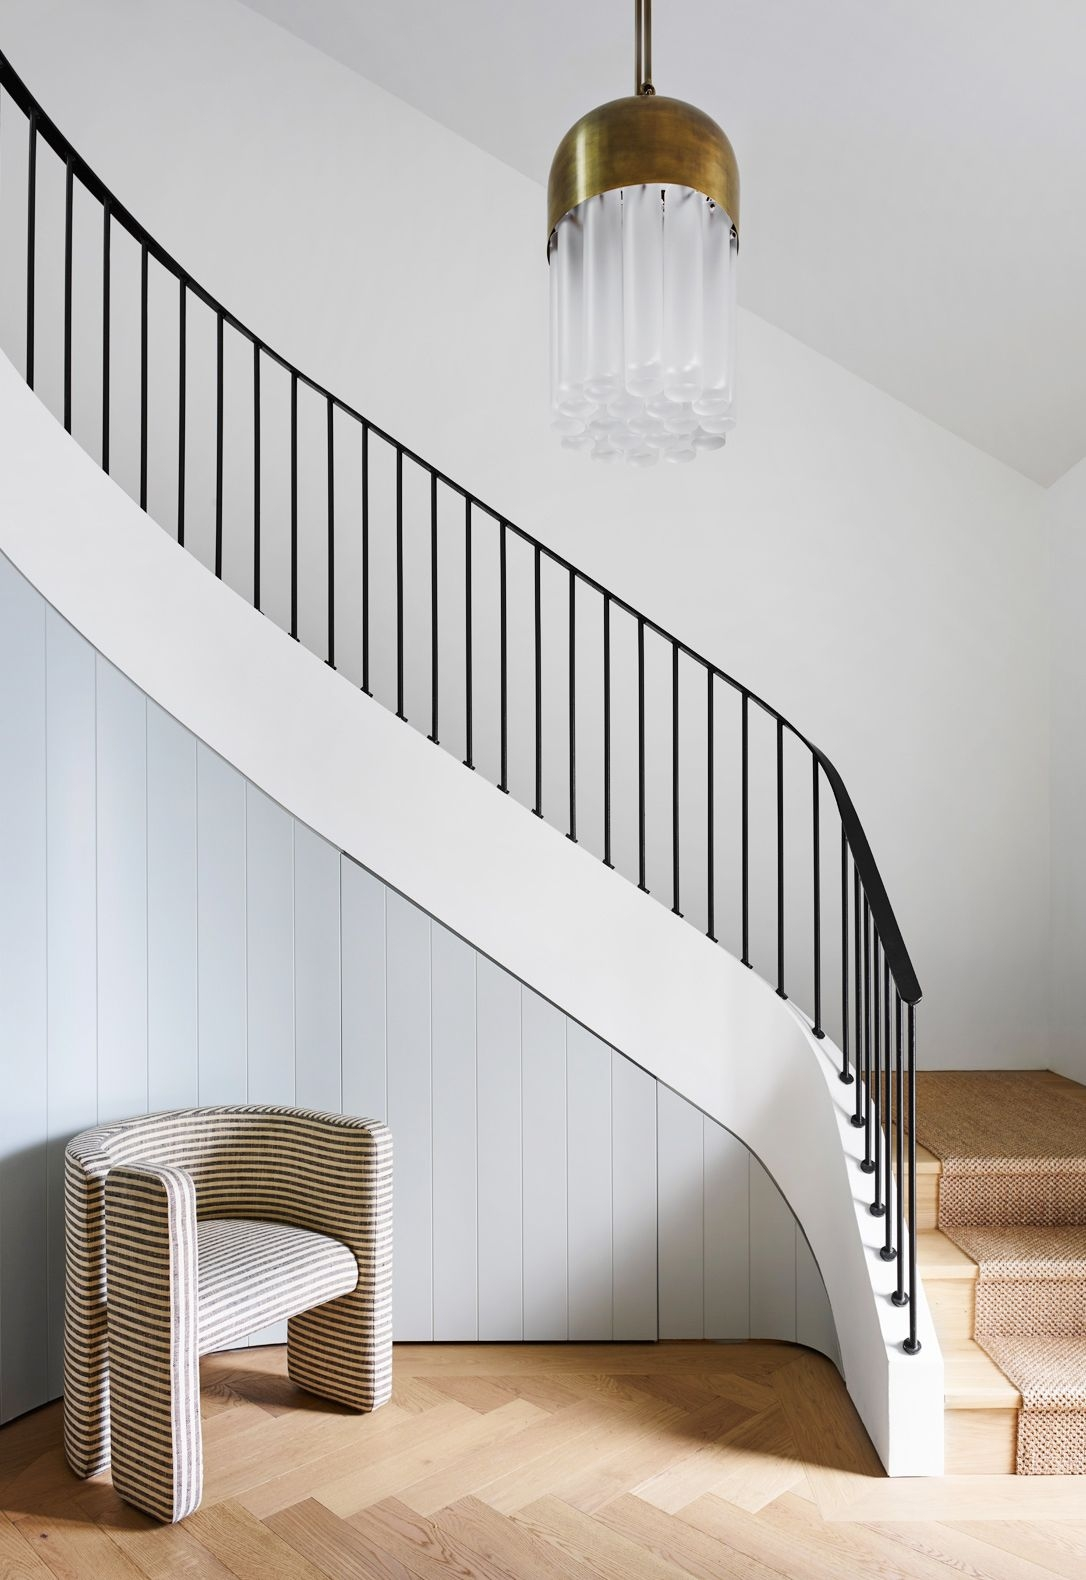 25 Unique Stair Designs Beautiful Stair Ideas For Your House | Best Stair Design For Small House | Under Stairs | Handrail | Space Saving Staircase | Spiral Stair | Stair Case